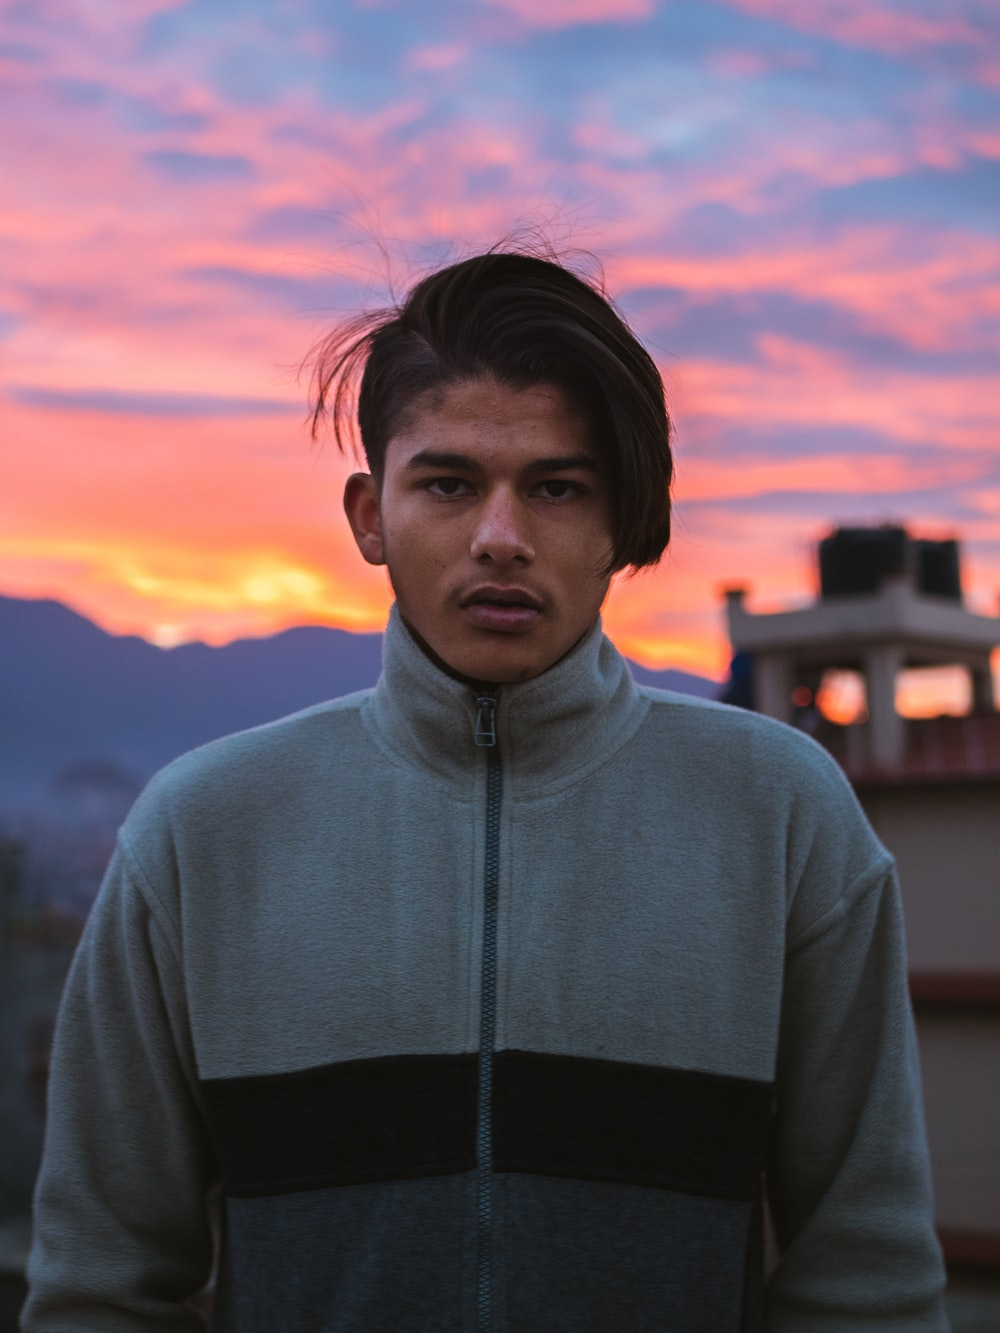 man in gray hoodie standing near building during sunset